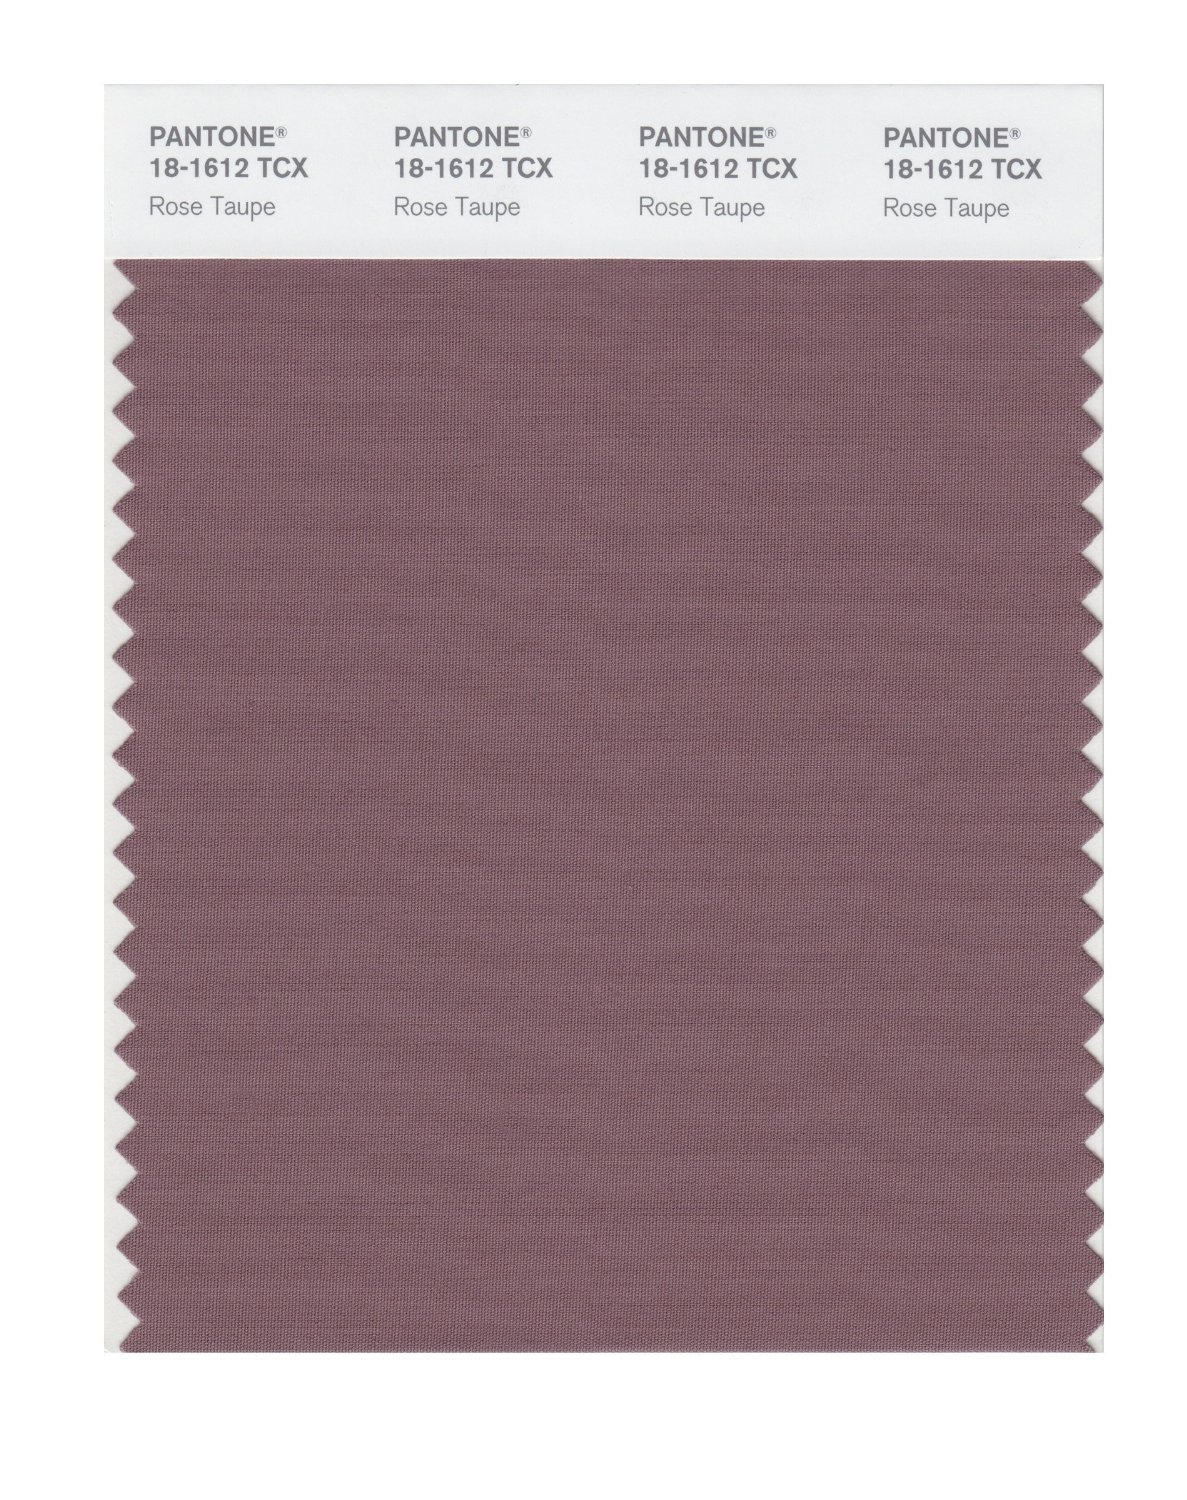 Pantone Smart Swatch 18-1612 Rose Taupe